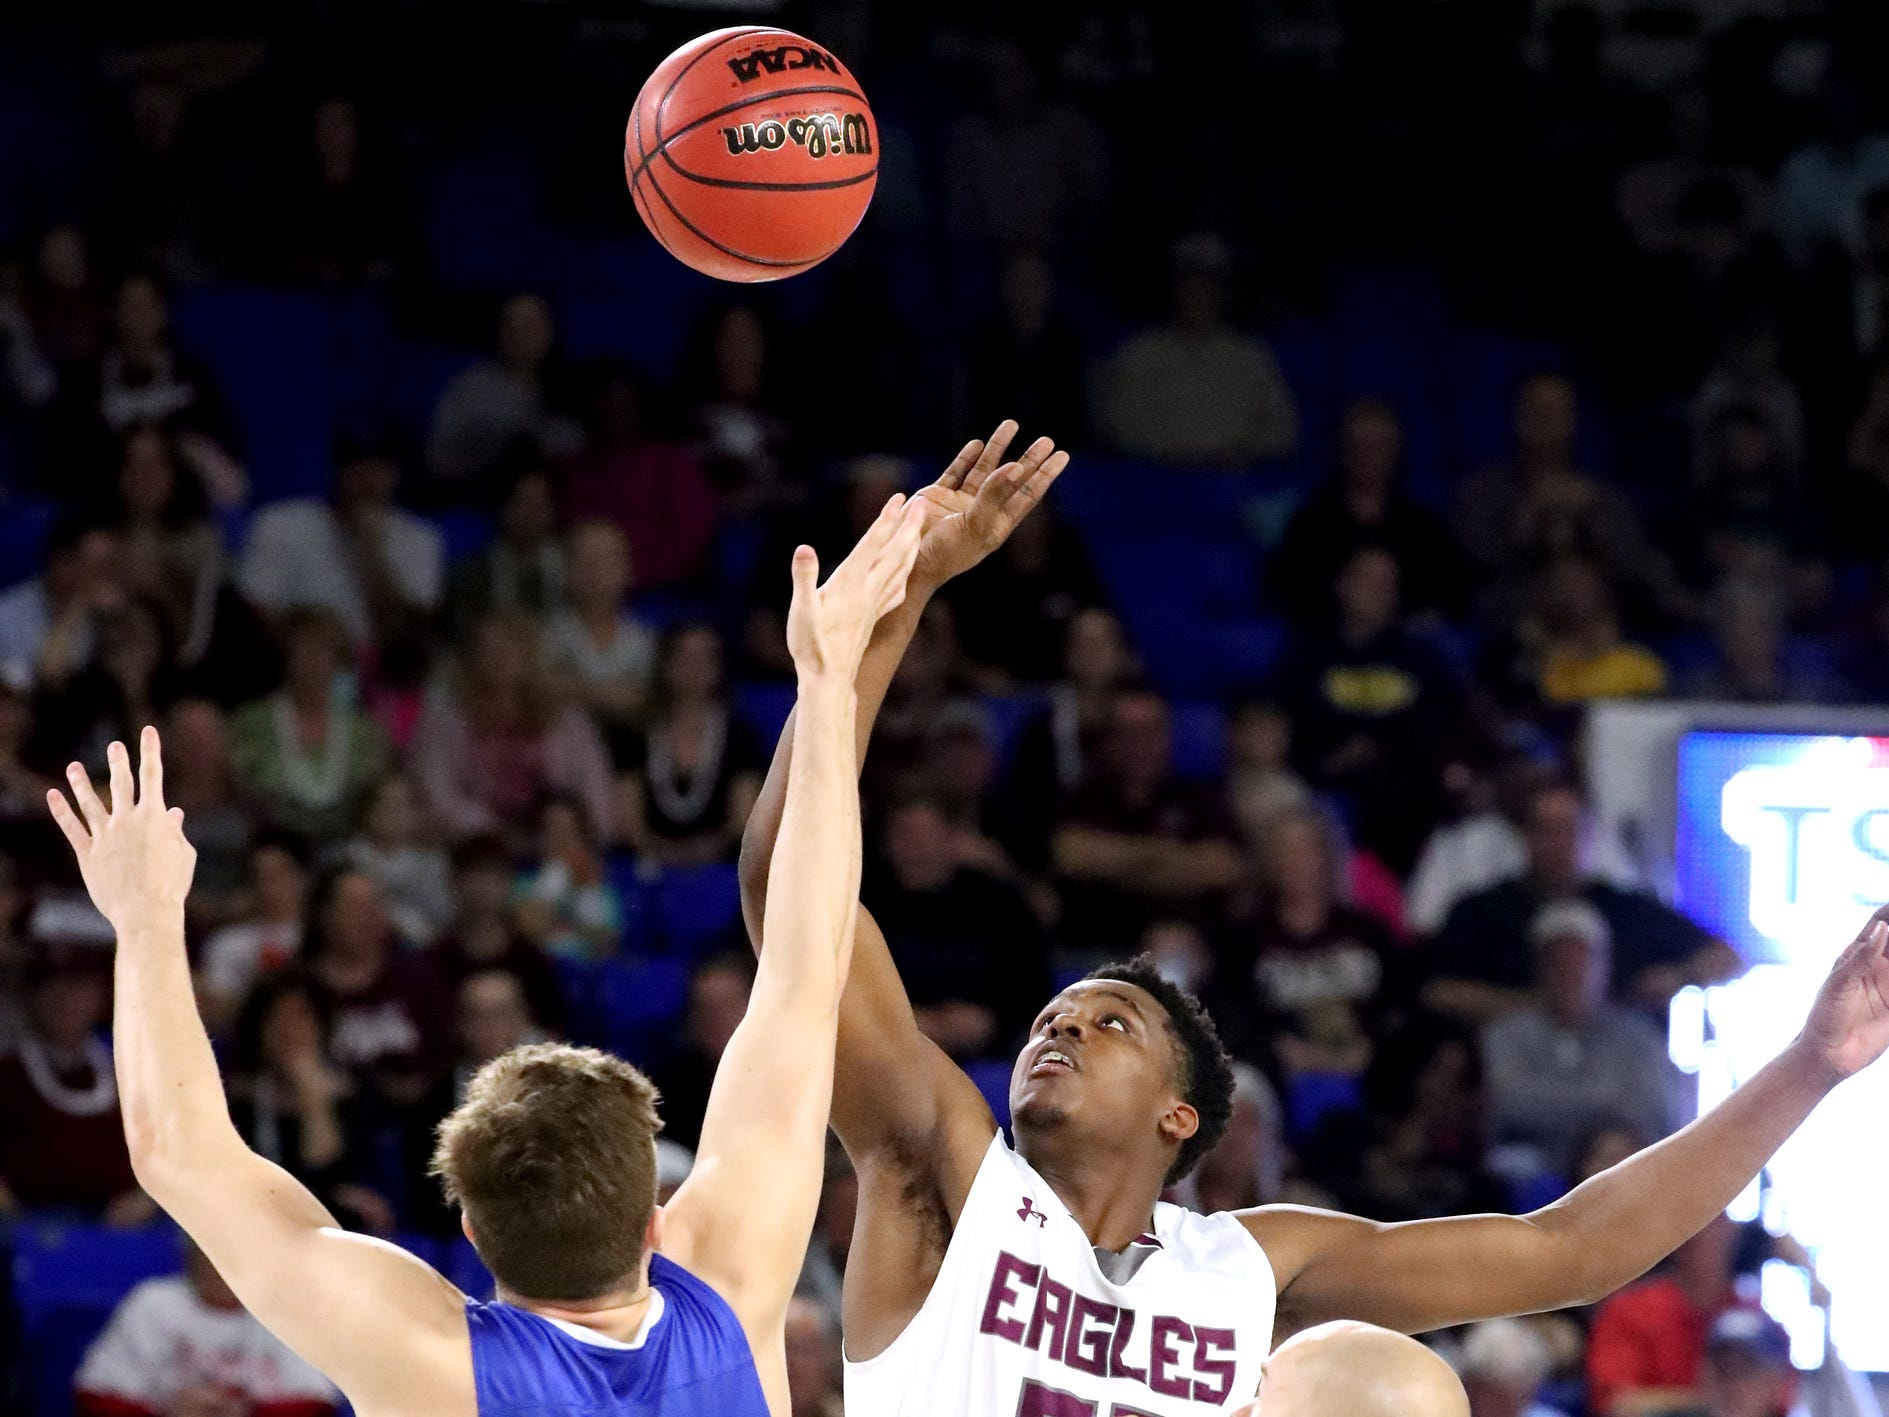 Cosby's Austin McKeehan (13) and Eagleville's Demarious Stoudemire (33) jump the ball to start the quarterfinal round of the TSSAA Class A Boys State Tournament, on Thursday, March 14, 2019, at Murphy Center in Murfreesboro, Tenn.